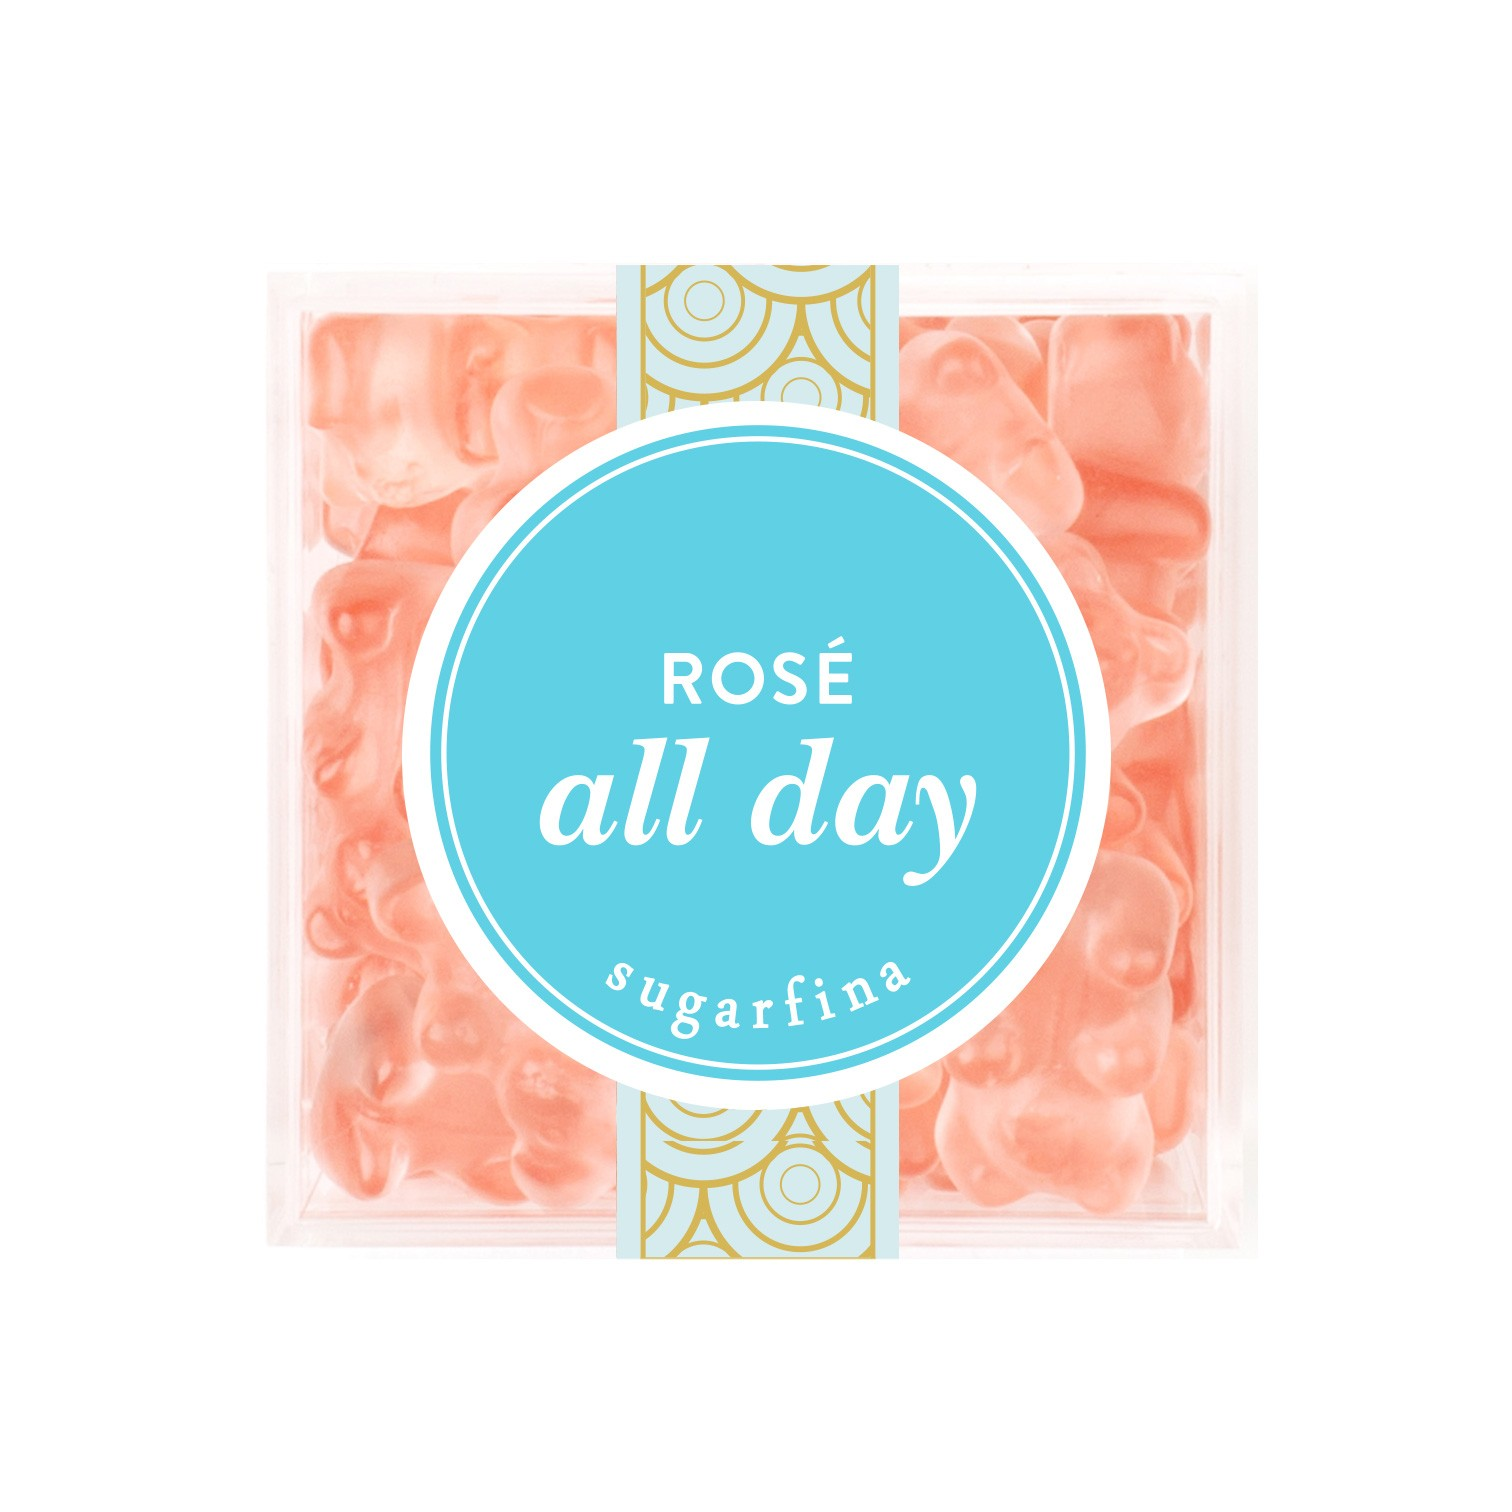 rose_all_day_cube_with-label_r2.jpg